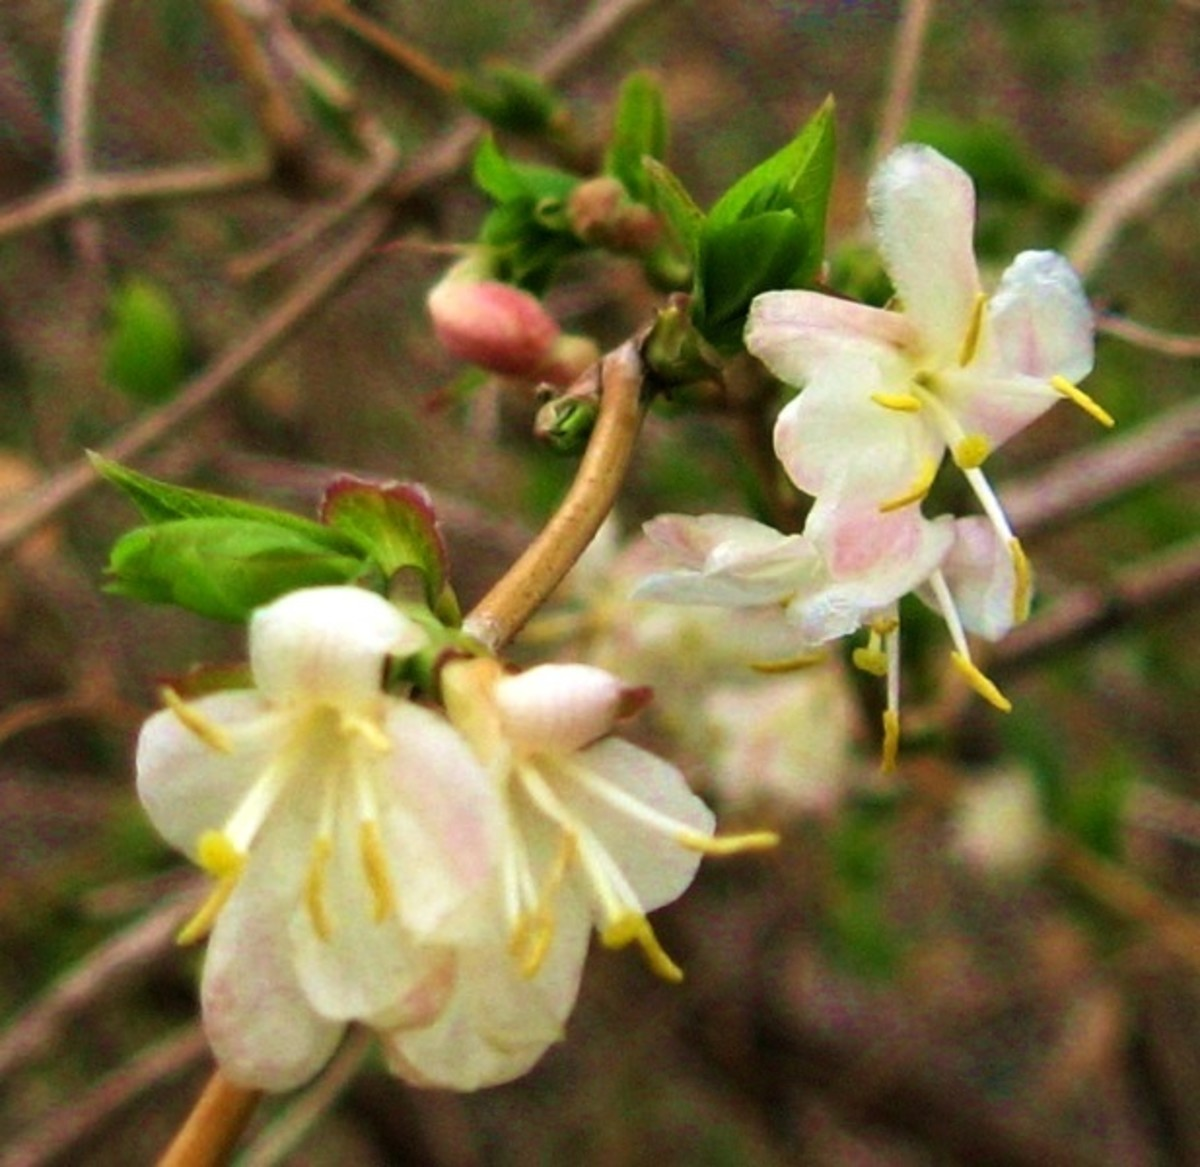 Fragrant winter honeysuckle in bloom.